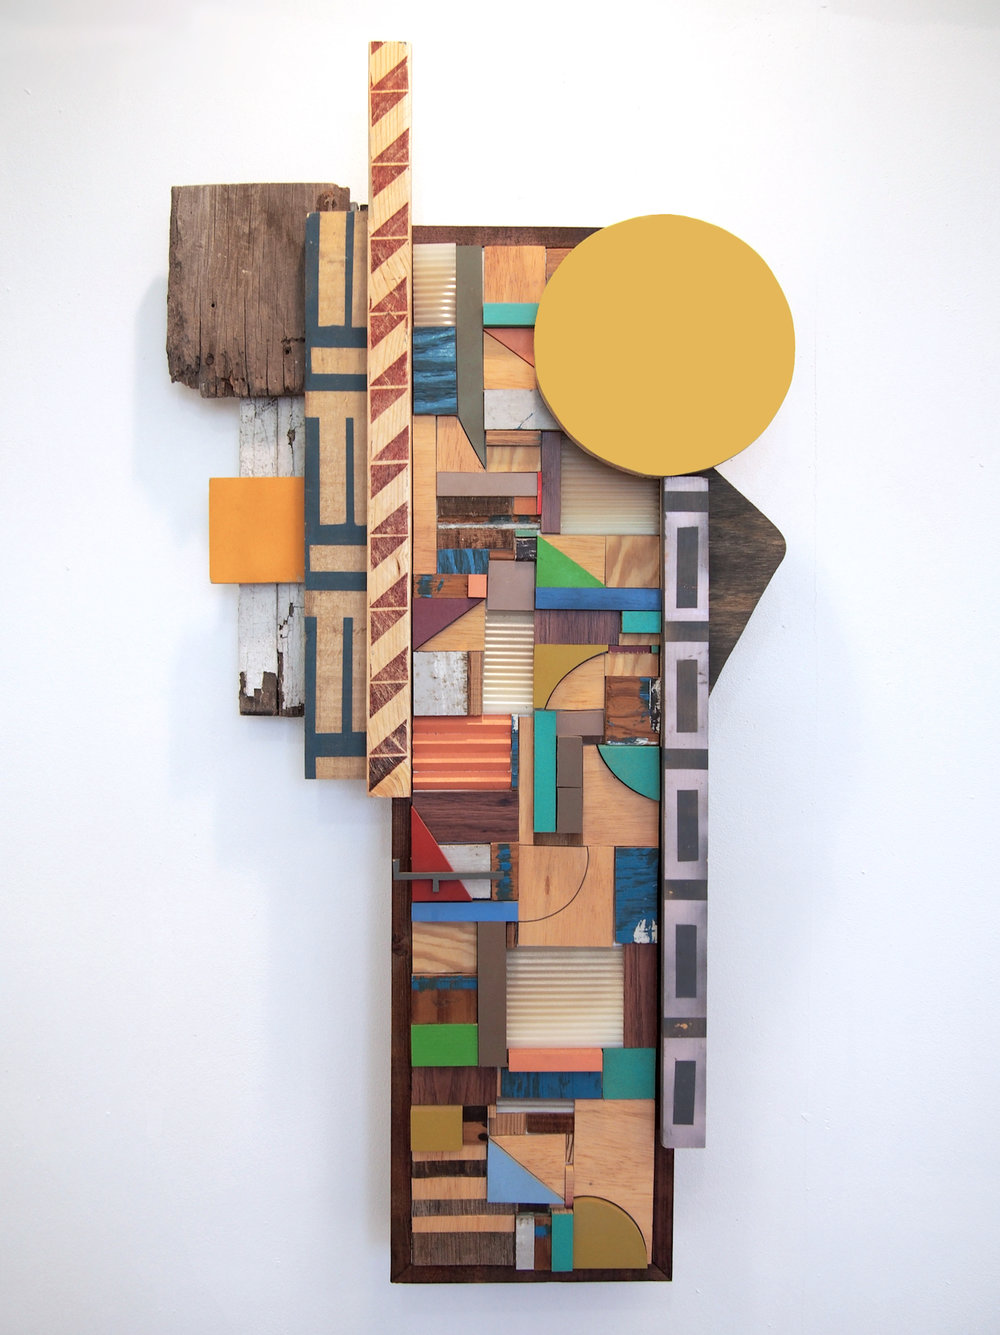 40x23x6 , wood, plastic, stain, acrylic paint, ink, 40 x 23 x 6 inches